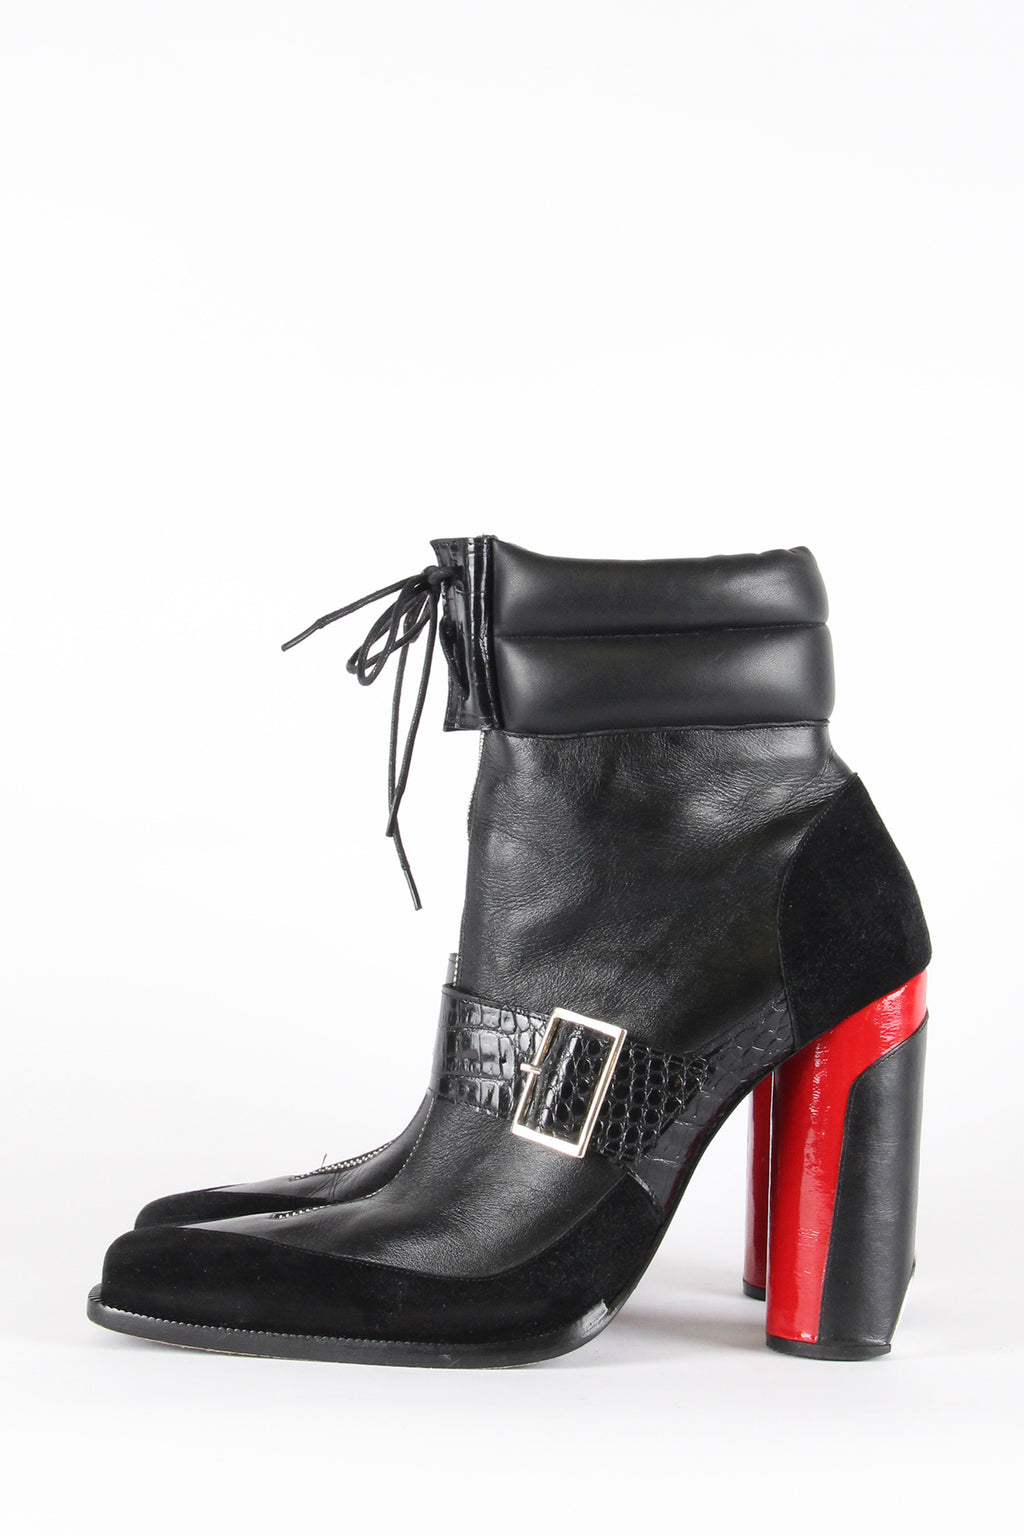 PRE-ORDER Black and Red Buckle Booties